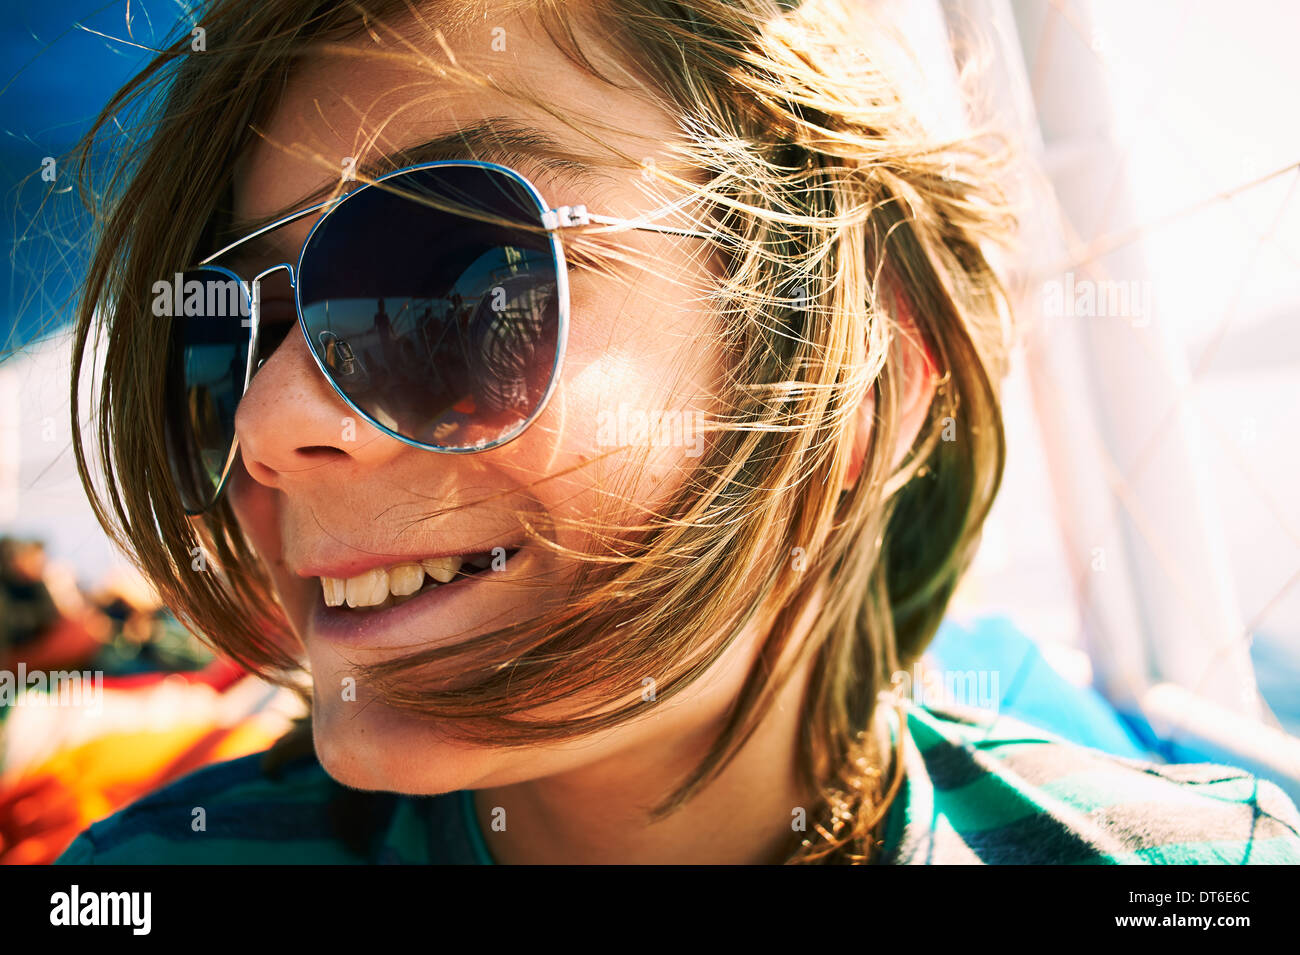 Close up portrait of boy candide in sunglasses Photo Stock